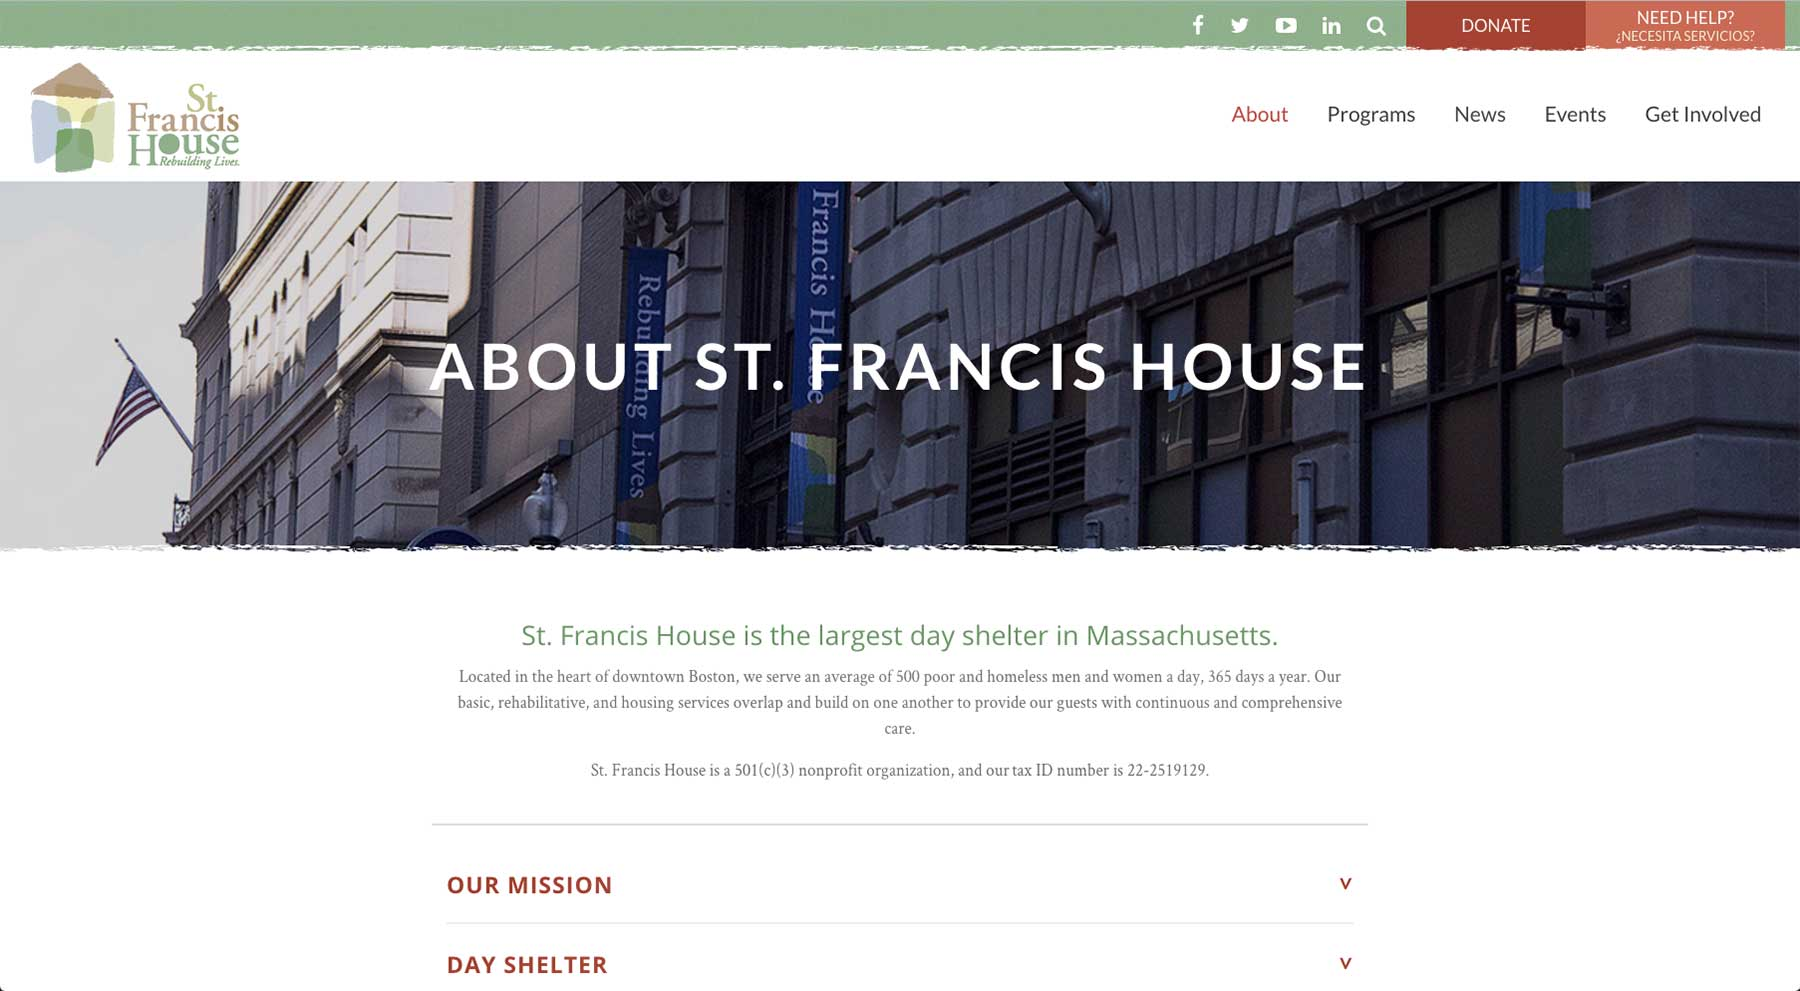 St. Francis House - About